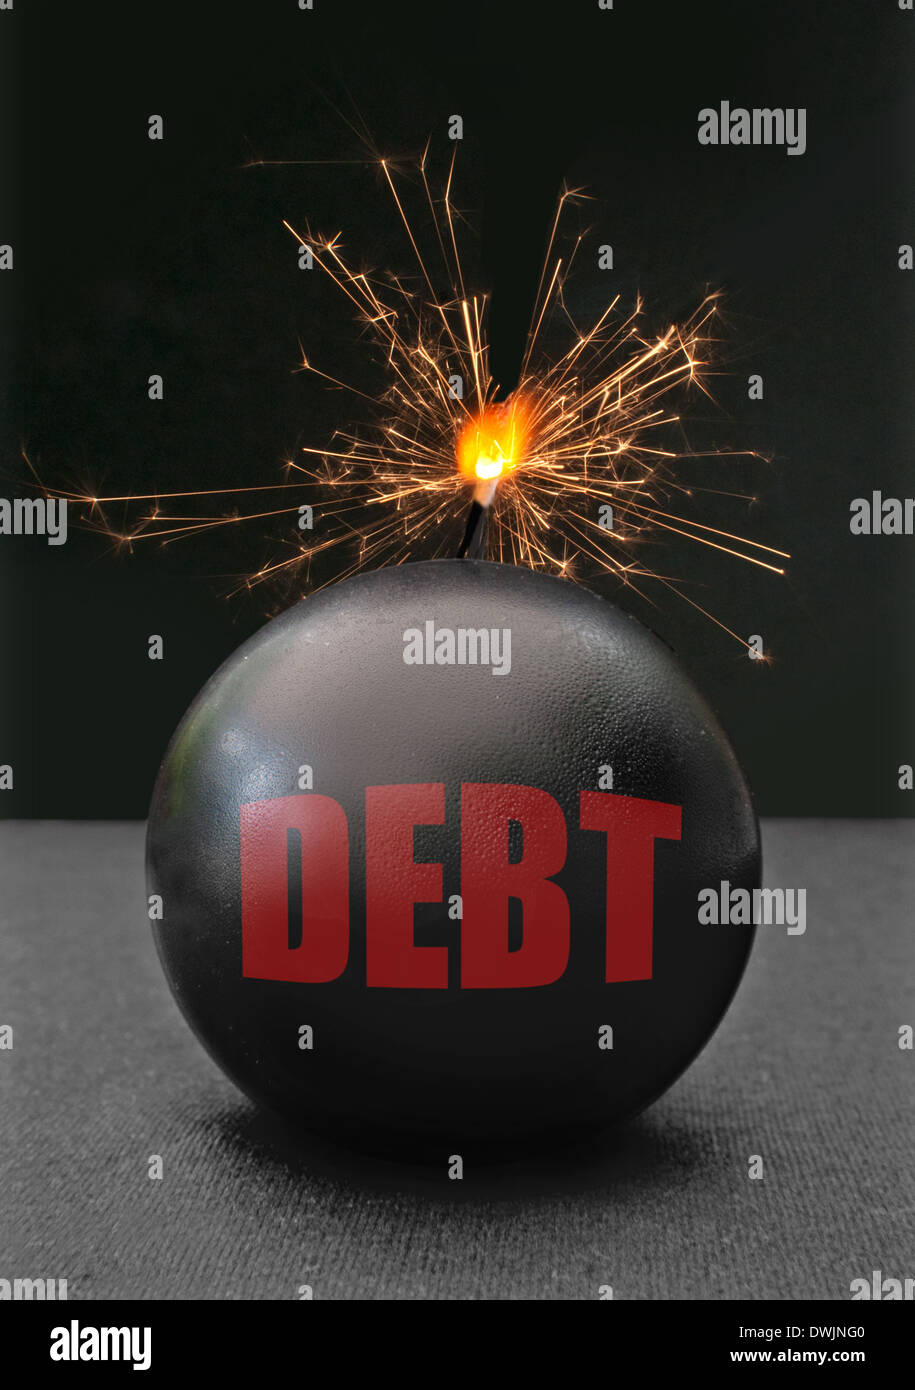 Debt concept - Stock Image